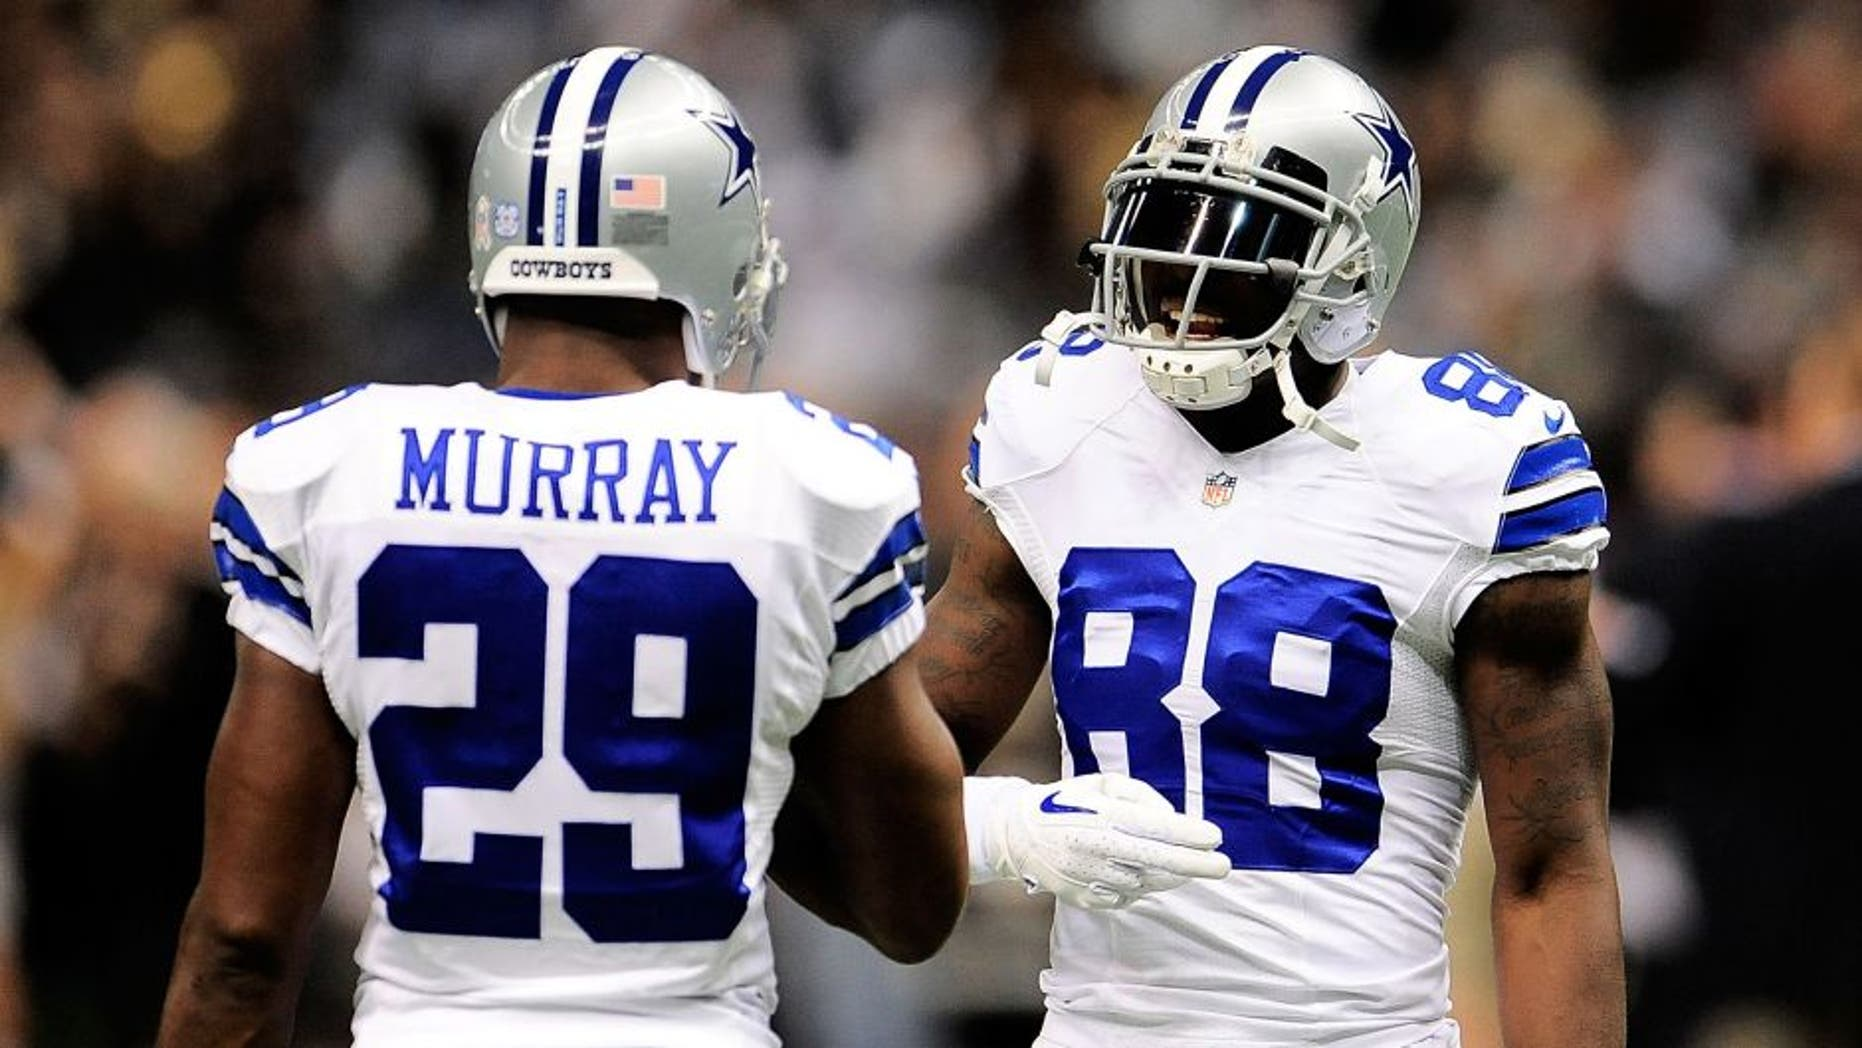 NEW ORLEANS, LA - NOVEMBER 10: DeMarco Murray #29 and Dez Bryant #88 of the Dallas Cowboys meet on the field prior to a game against the New Orleans Saints at the Mercedes-Benz Superdome on November 10, 2013 in New Orleans, Louisiana. New Orleans defeated Dallas 49-17. (Photo by Stacy Revere/Getty Images)